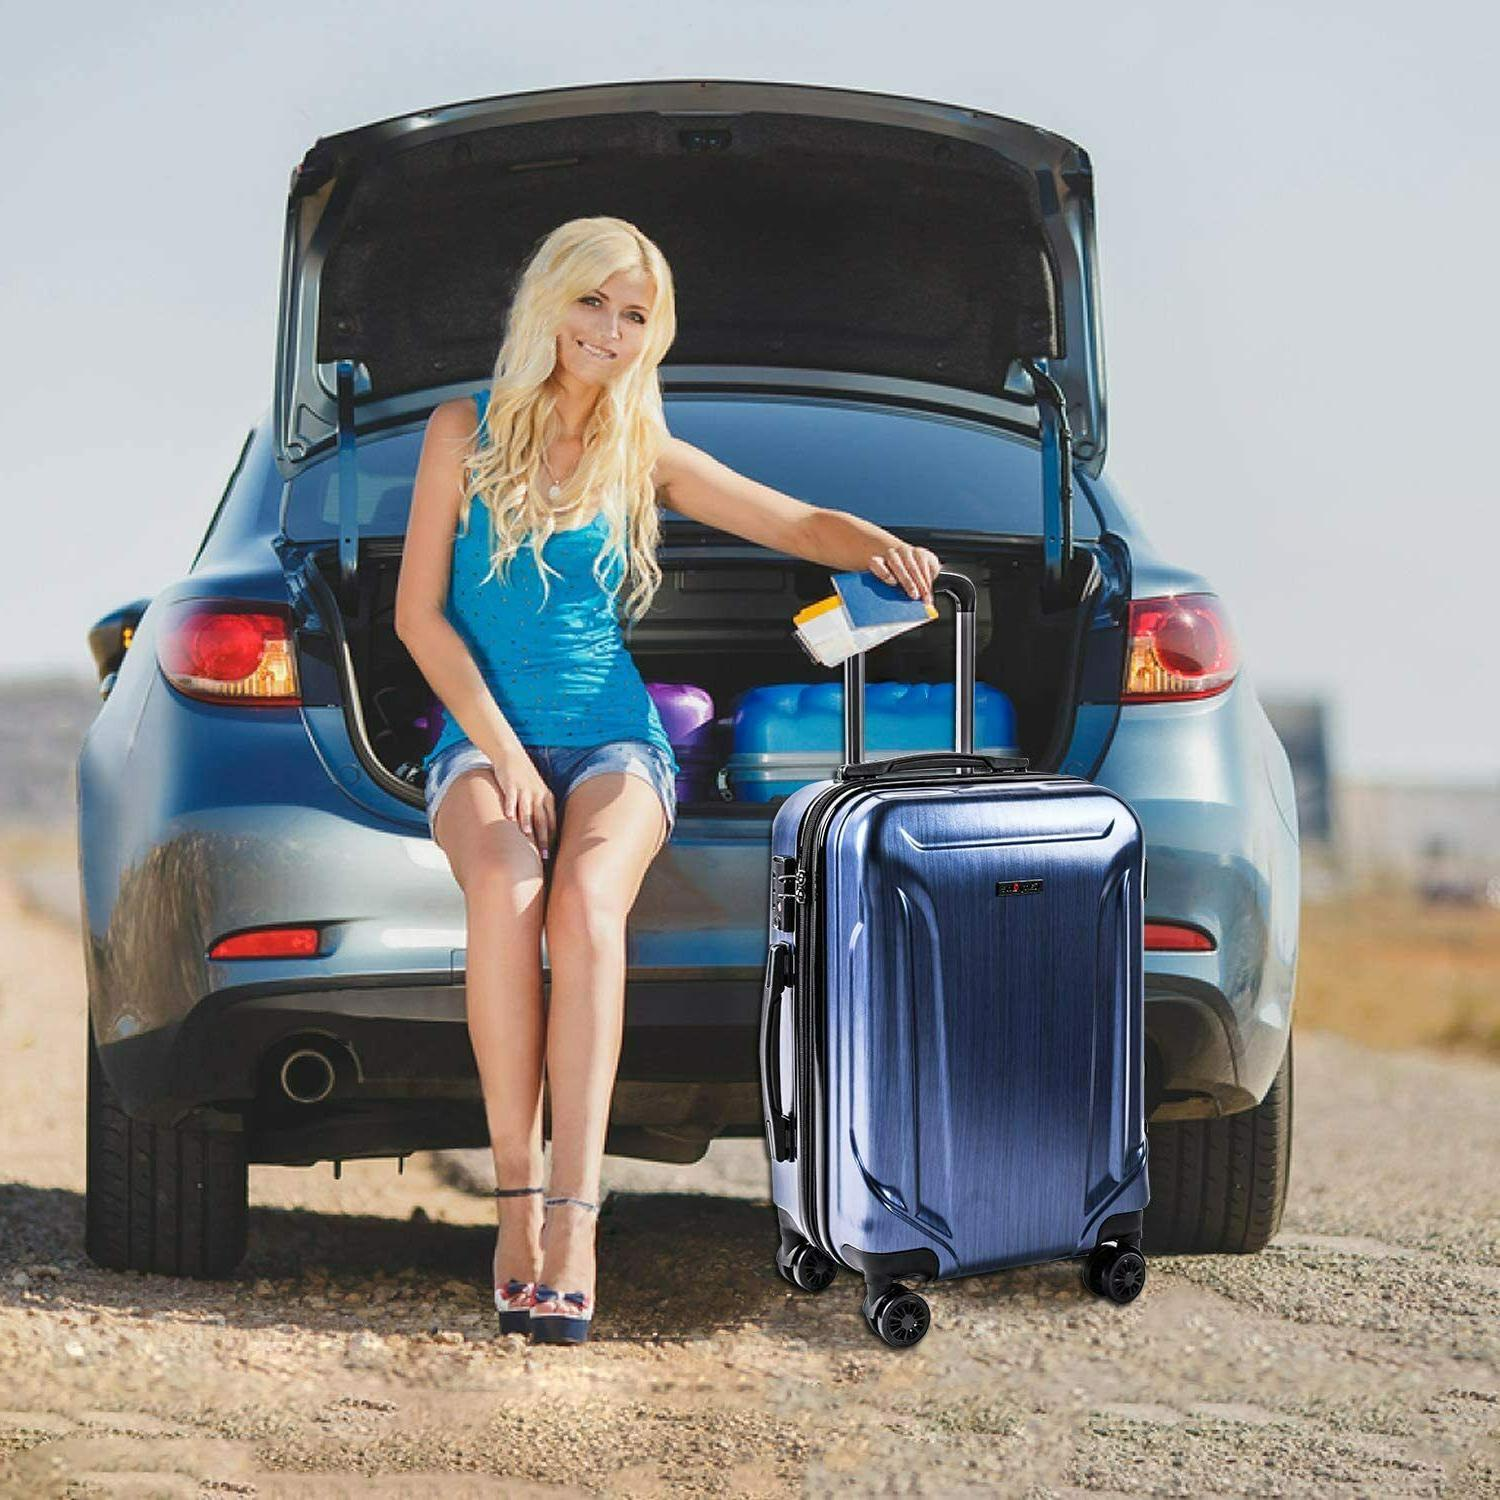 CarryOne Luggage PC+ABS Travel Suitcase